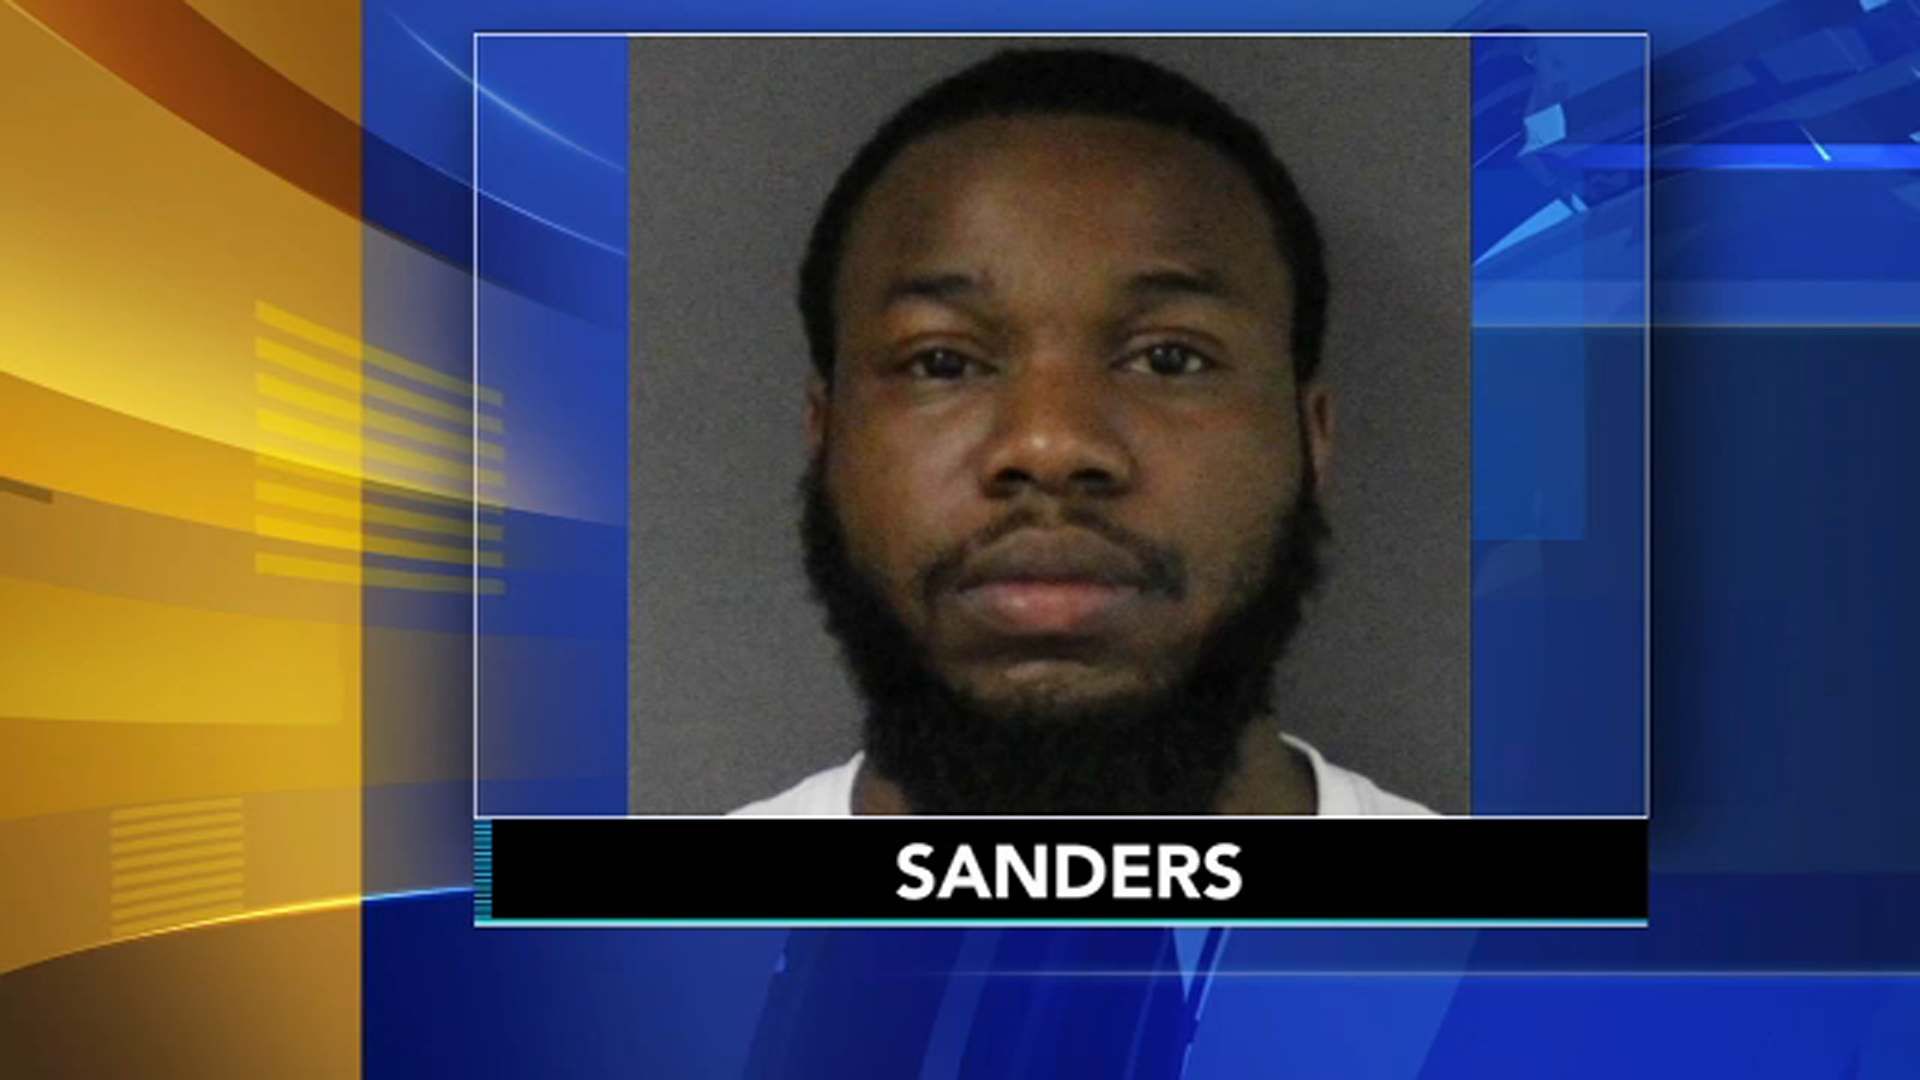 Michael Sanders charged with setting fire that killed his baby daughter and child's grandparents in Hamilton Township: Police